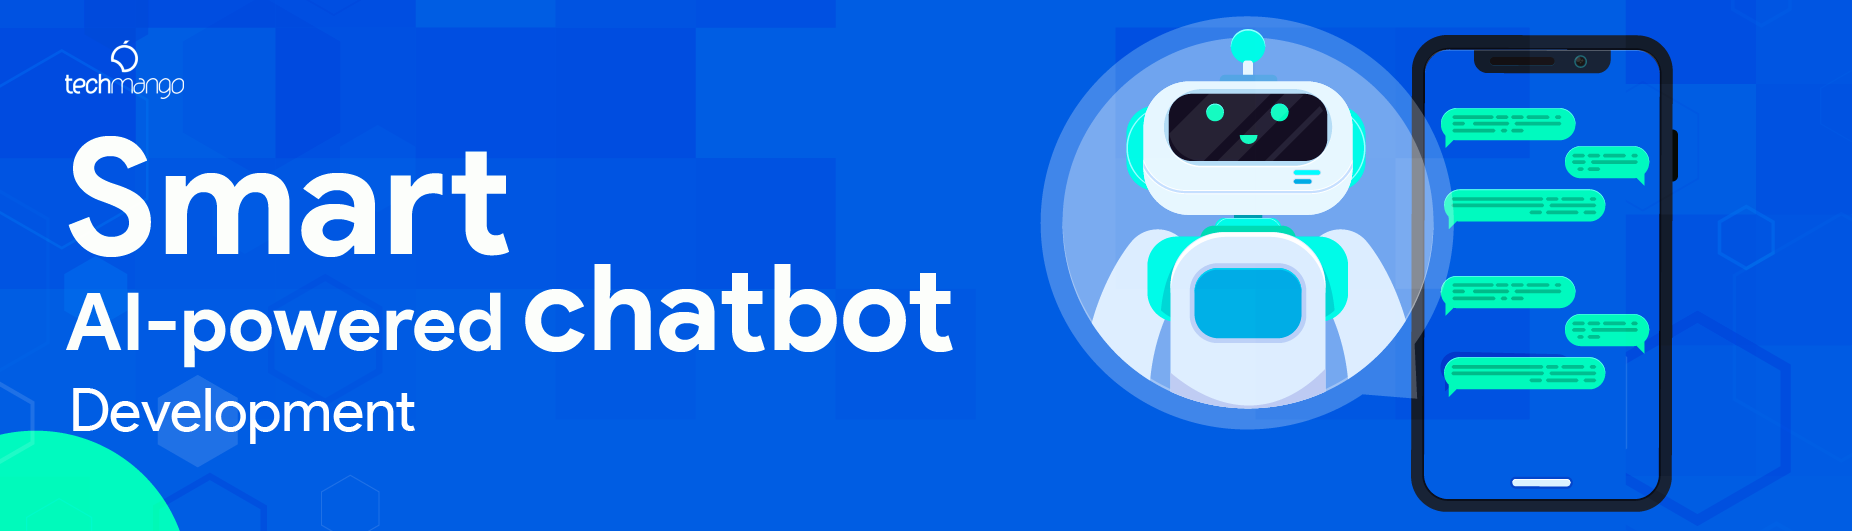 AI chatbot development